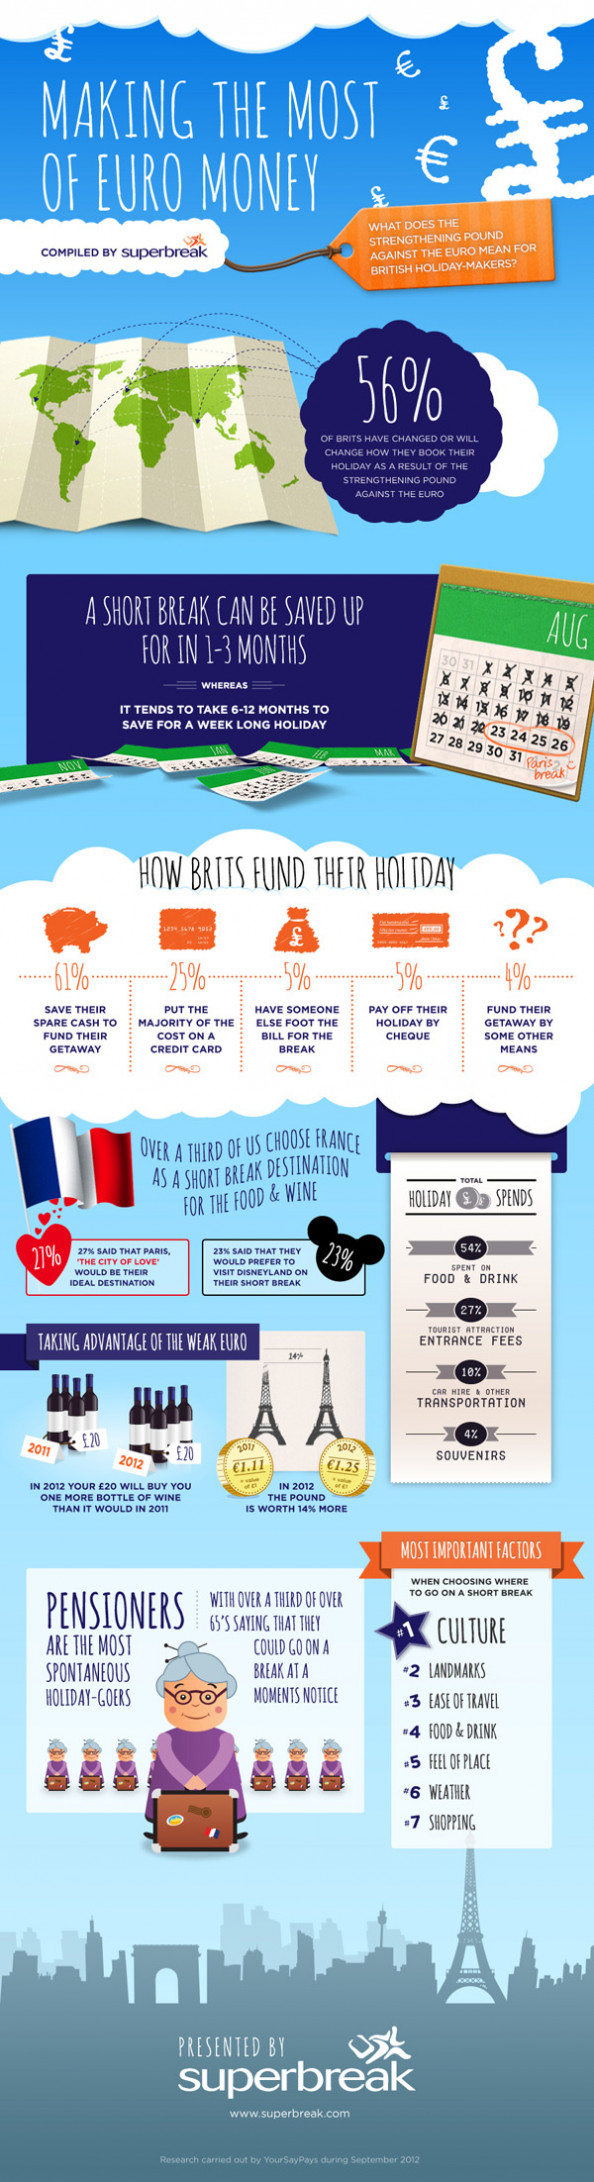 Making the Most of Euro Money Infographic